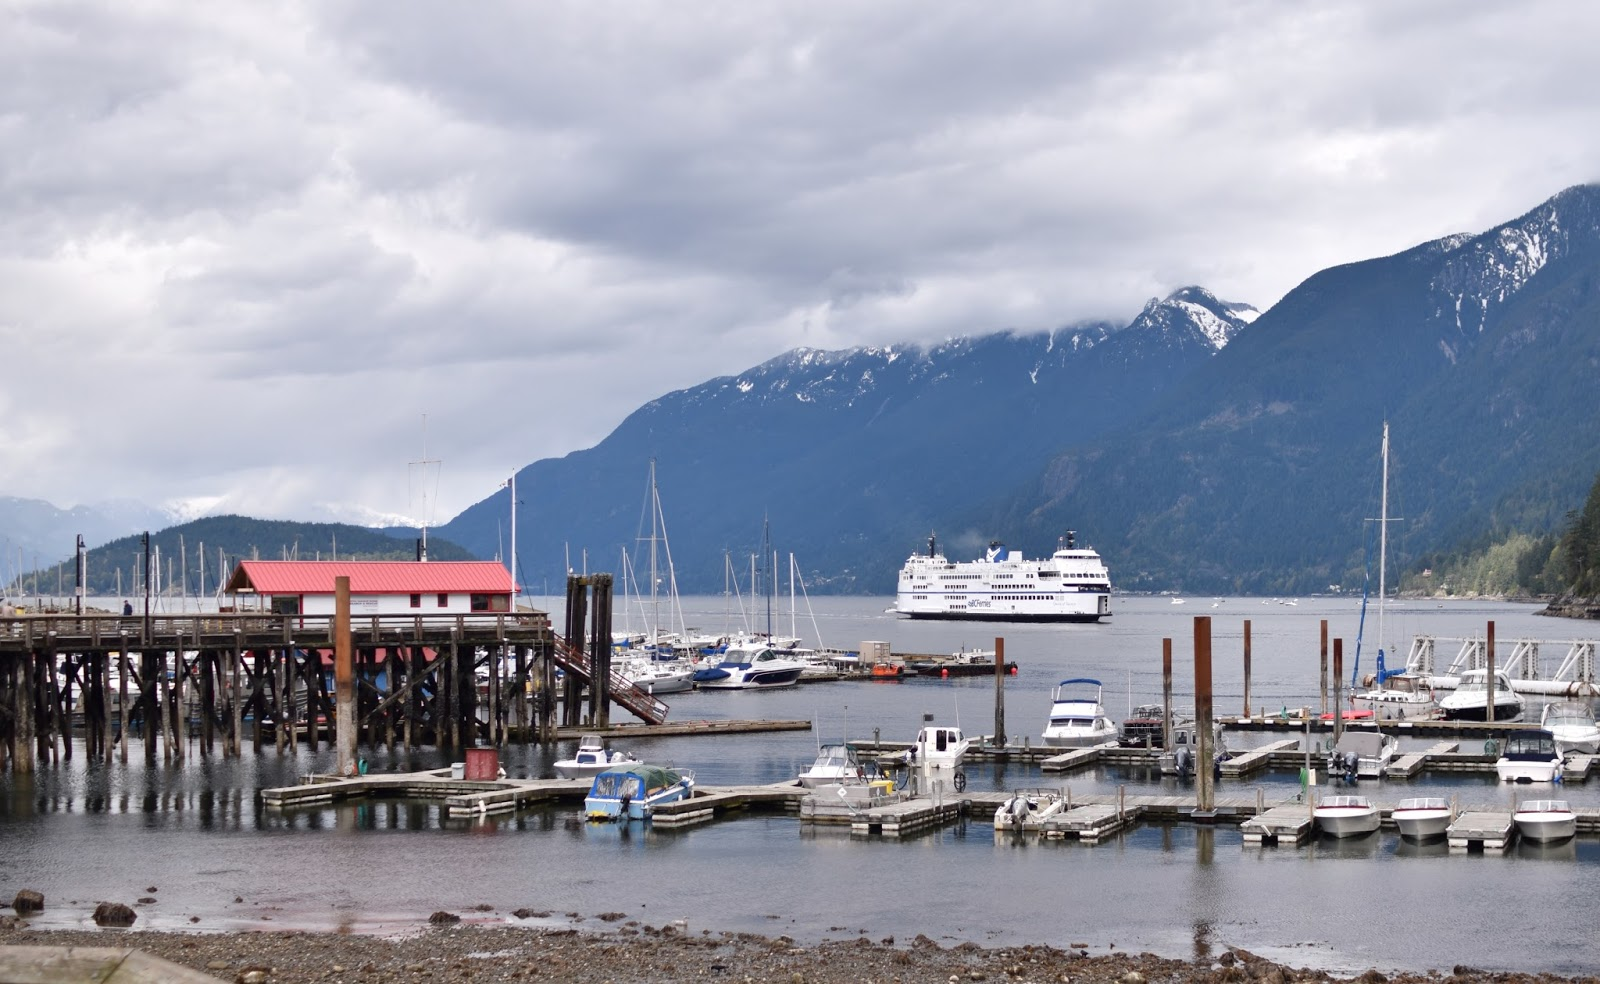 Horseshoe Bay, British Columbia